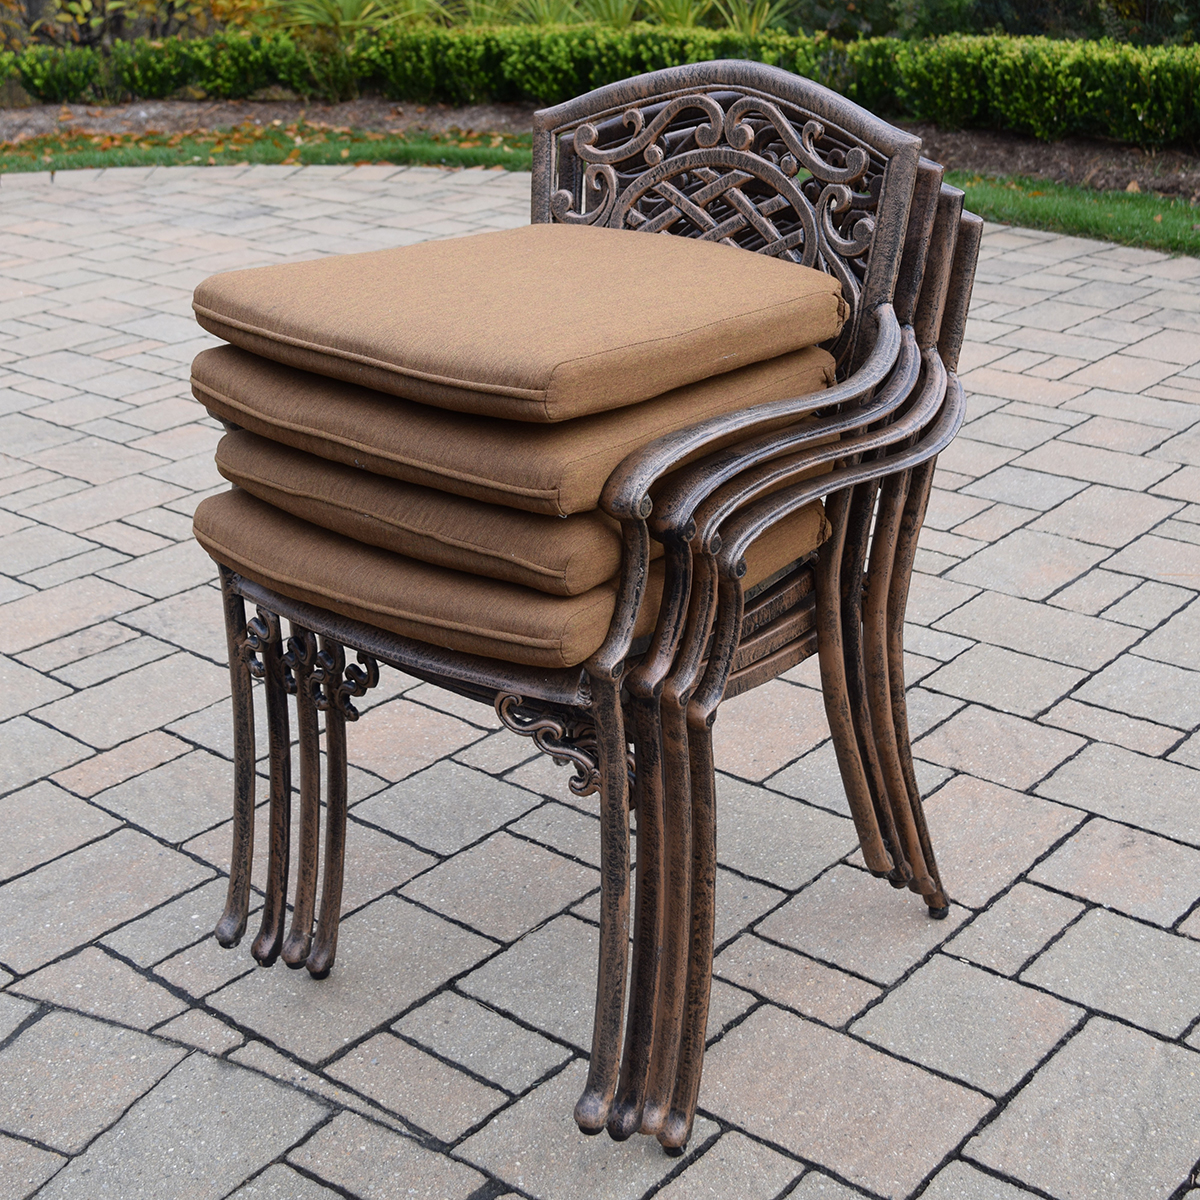 outdoor dining chairs stackable office chair seat covers amazon oakland living mississippi 5 pc patio cast aluminum